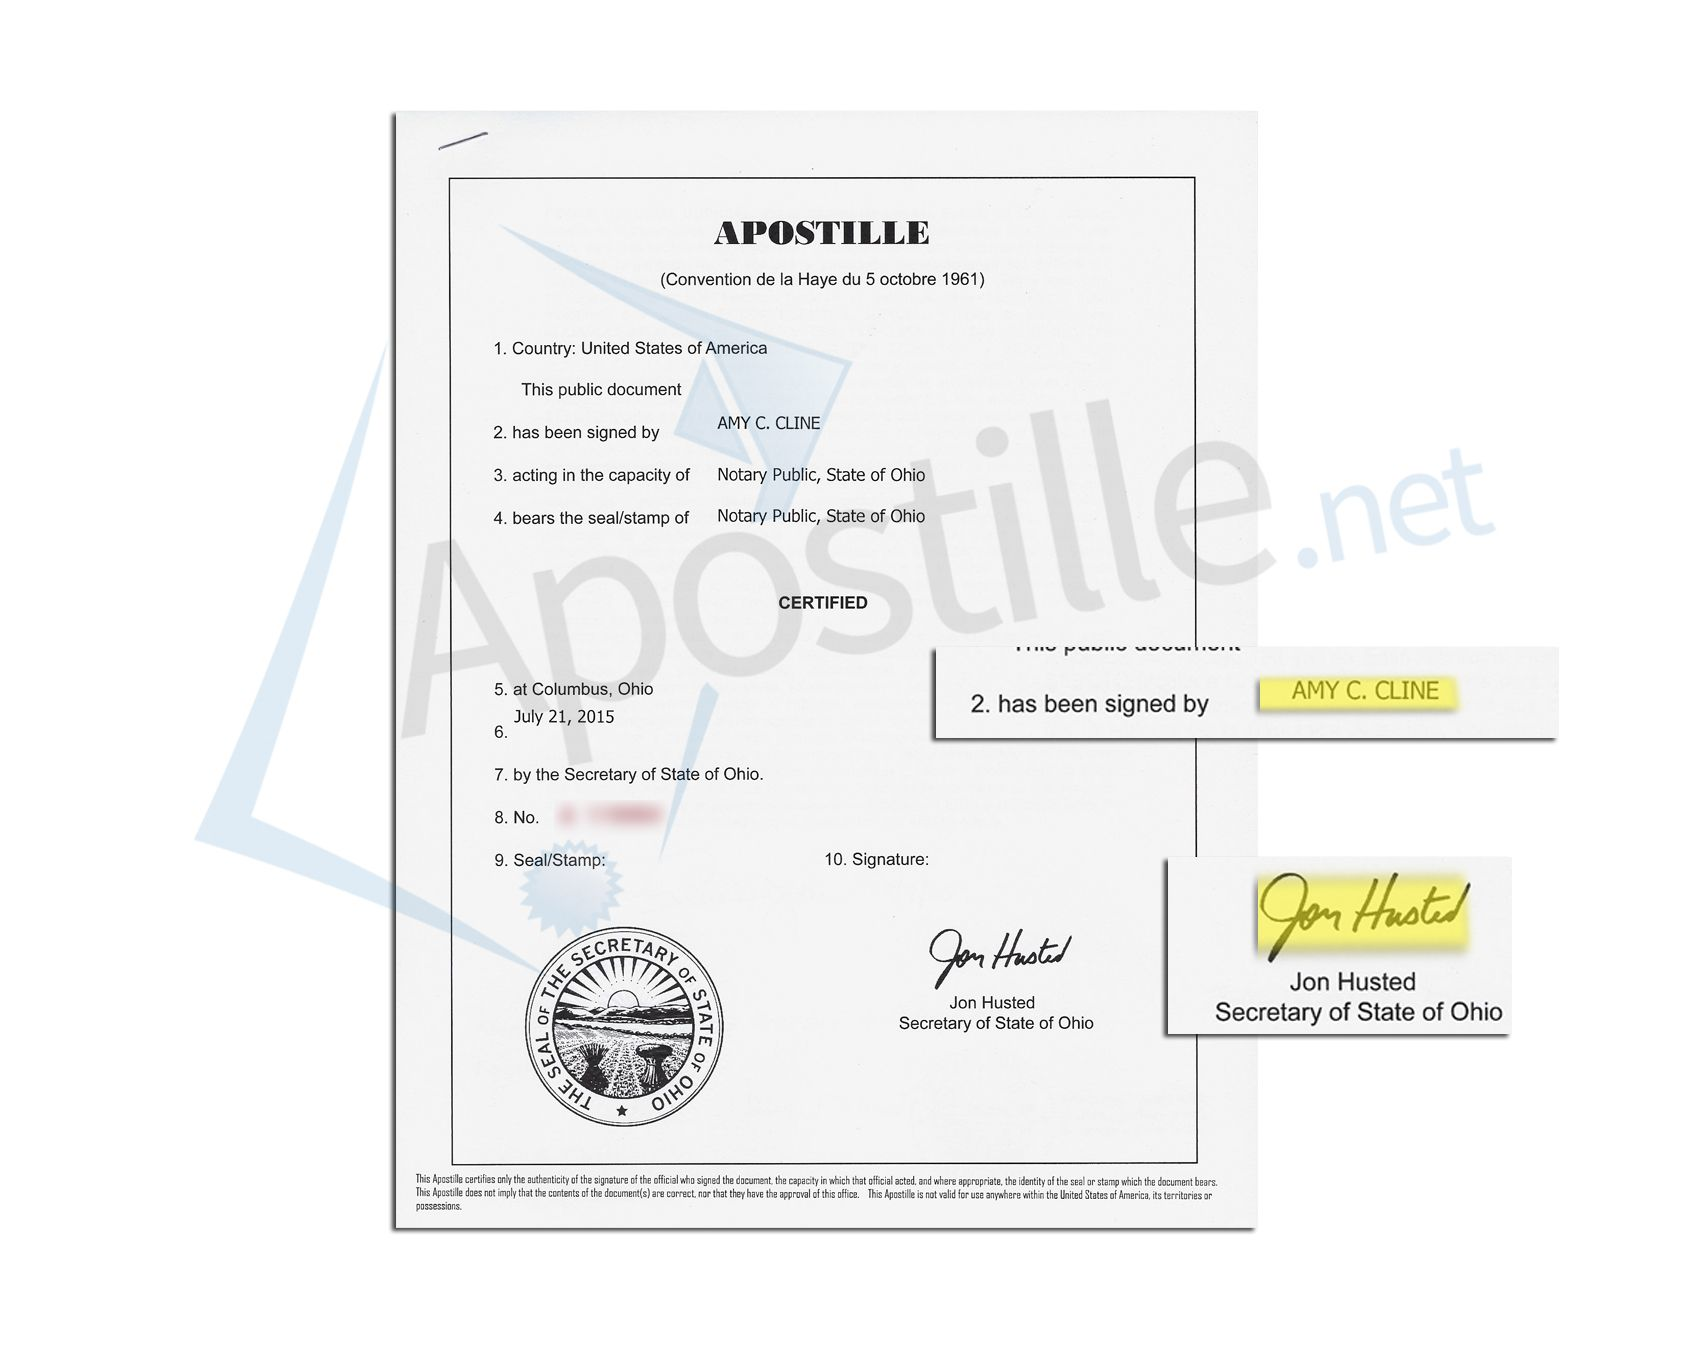 State of Ohio apostille issued by Jon Husted Secretary of